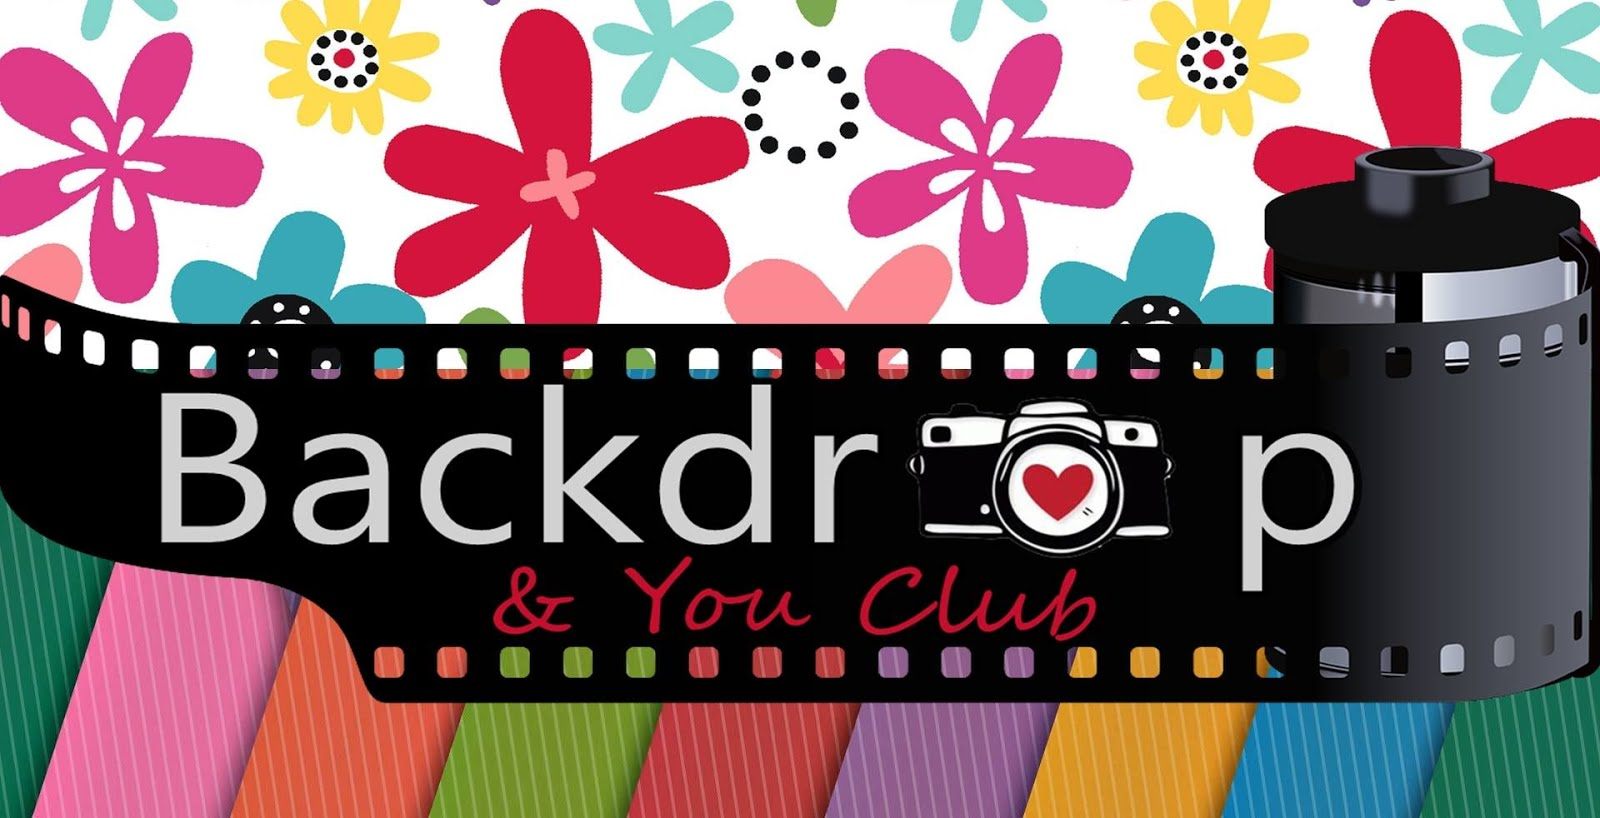 Backdrop & You Club - Location of Backdrops and Backgrounds